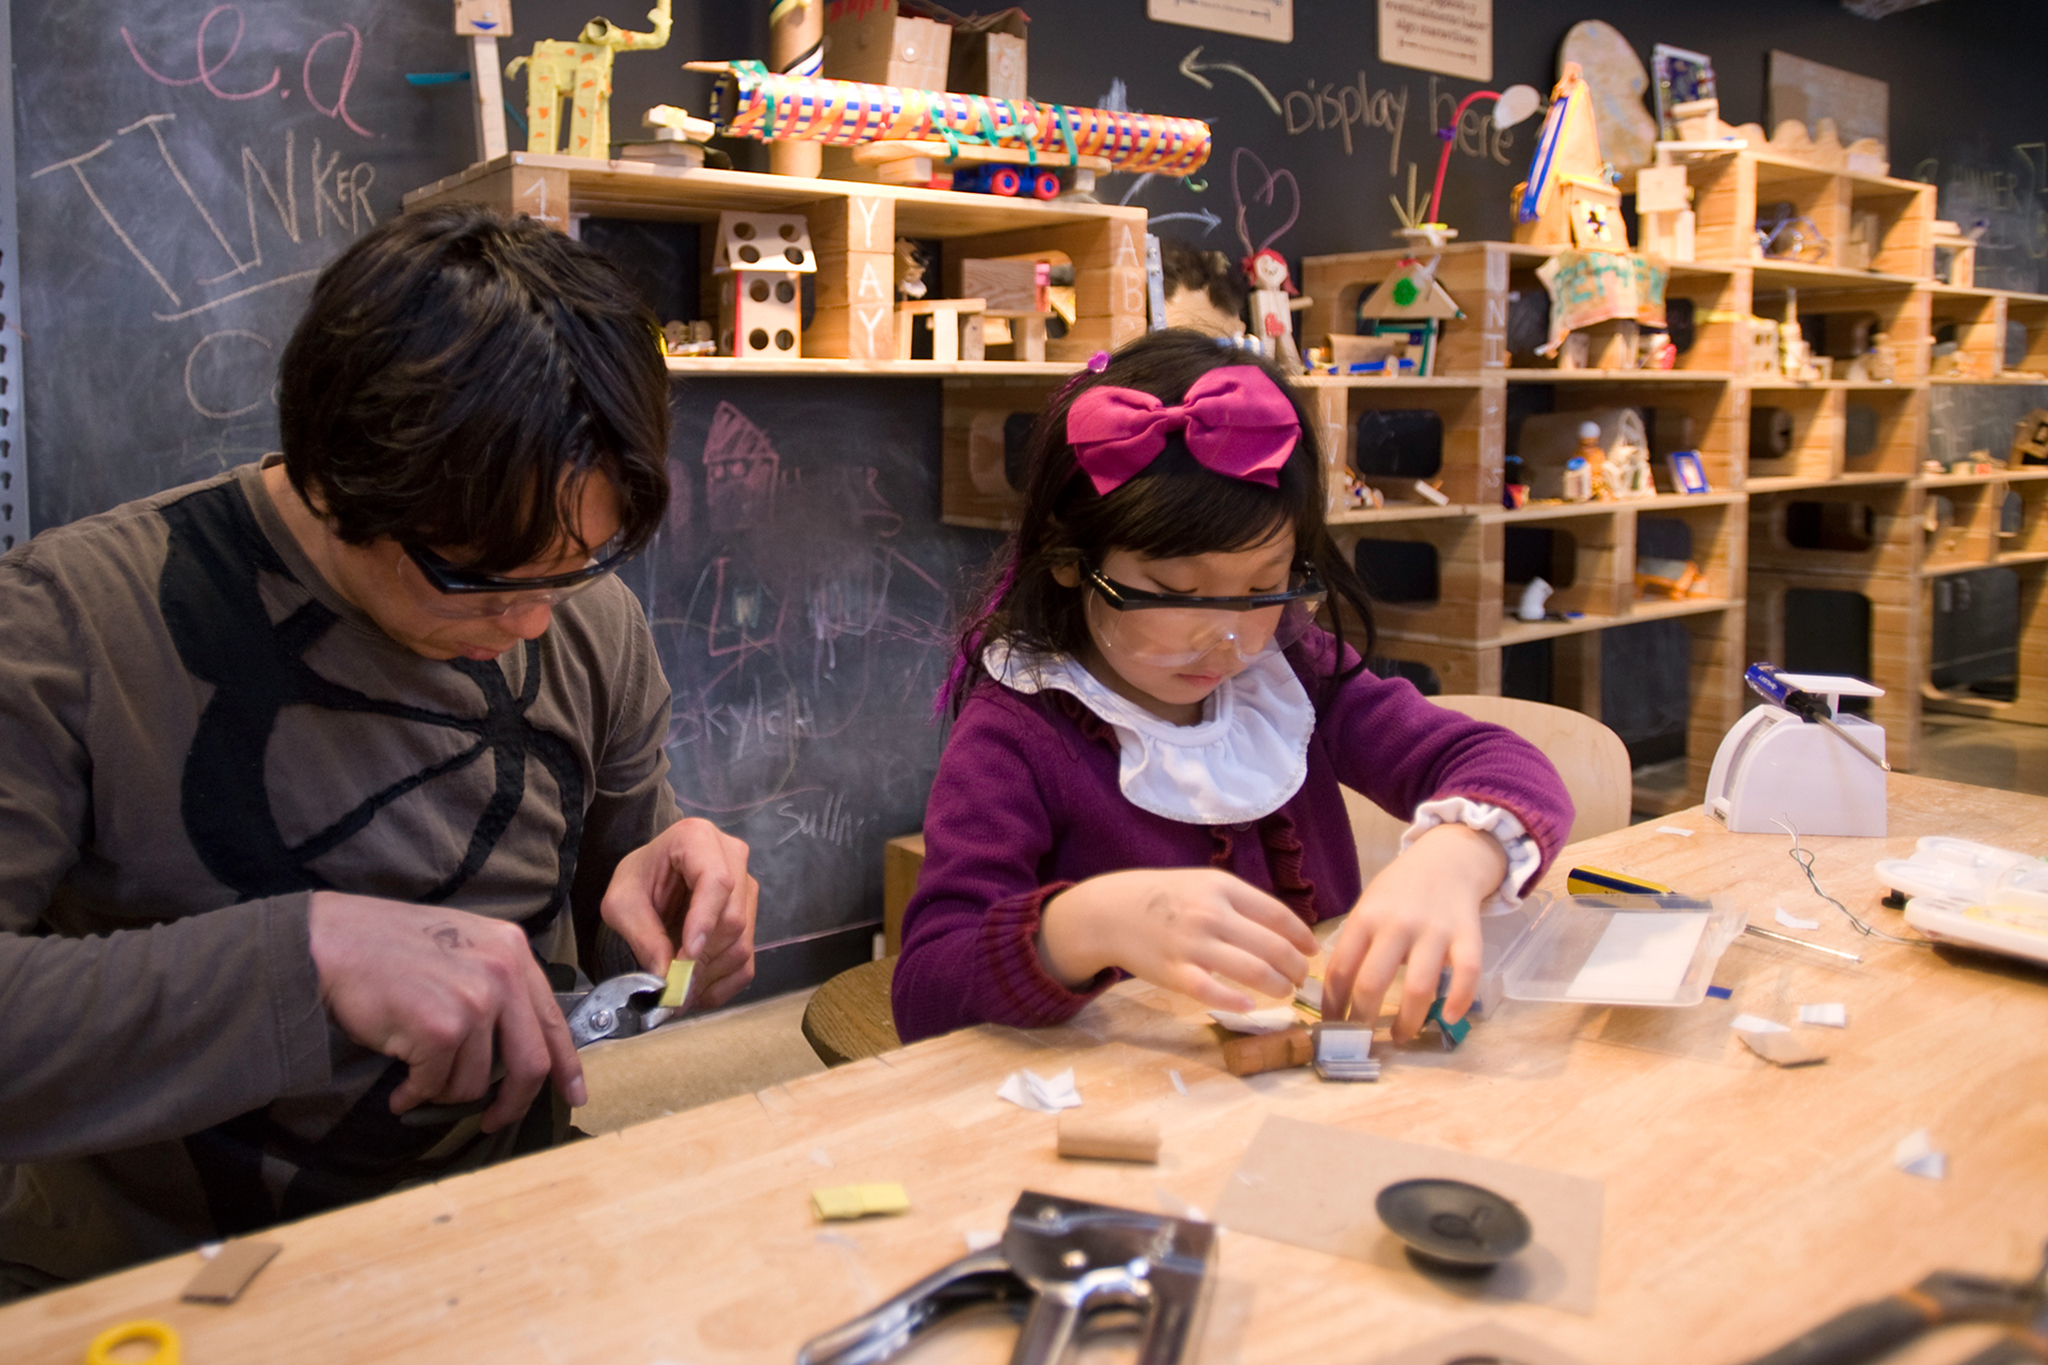 The Tinkering Lab at Chicago Children's Museum